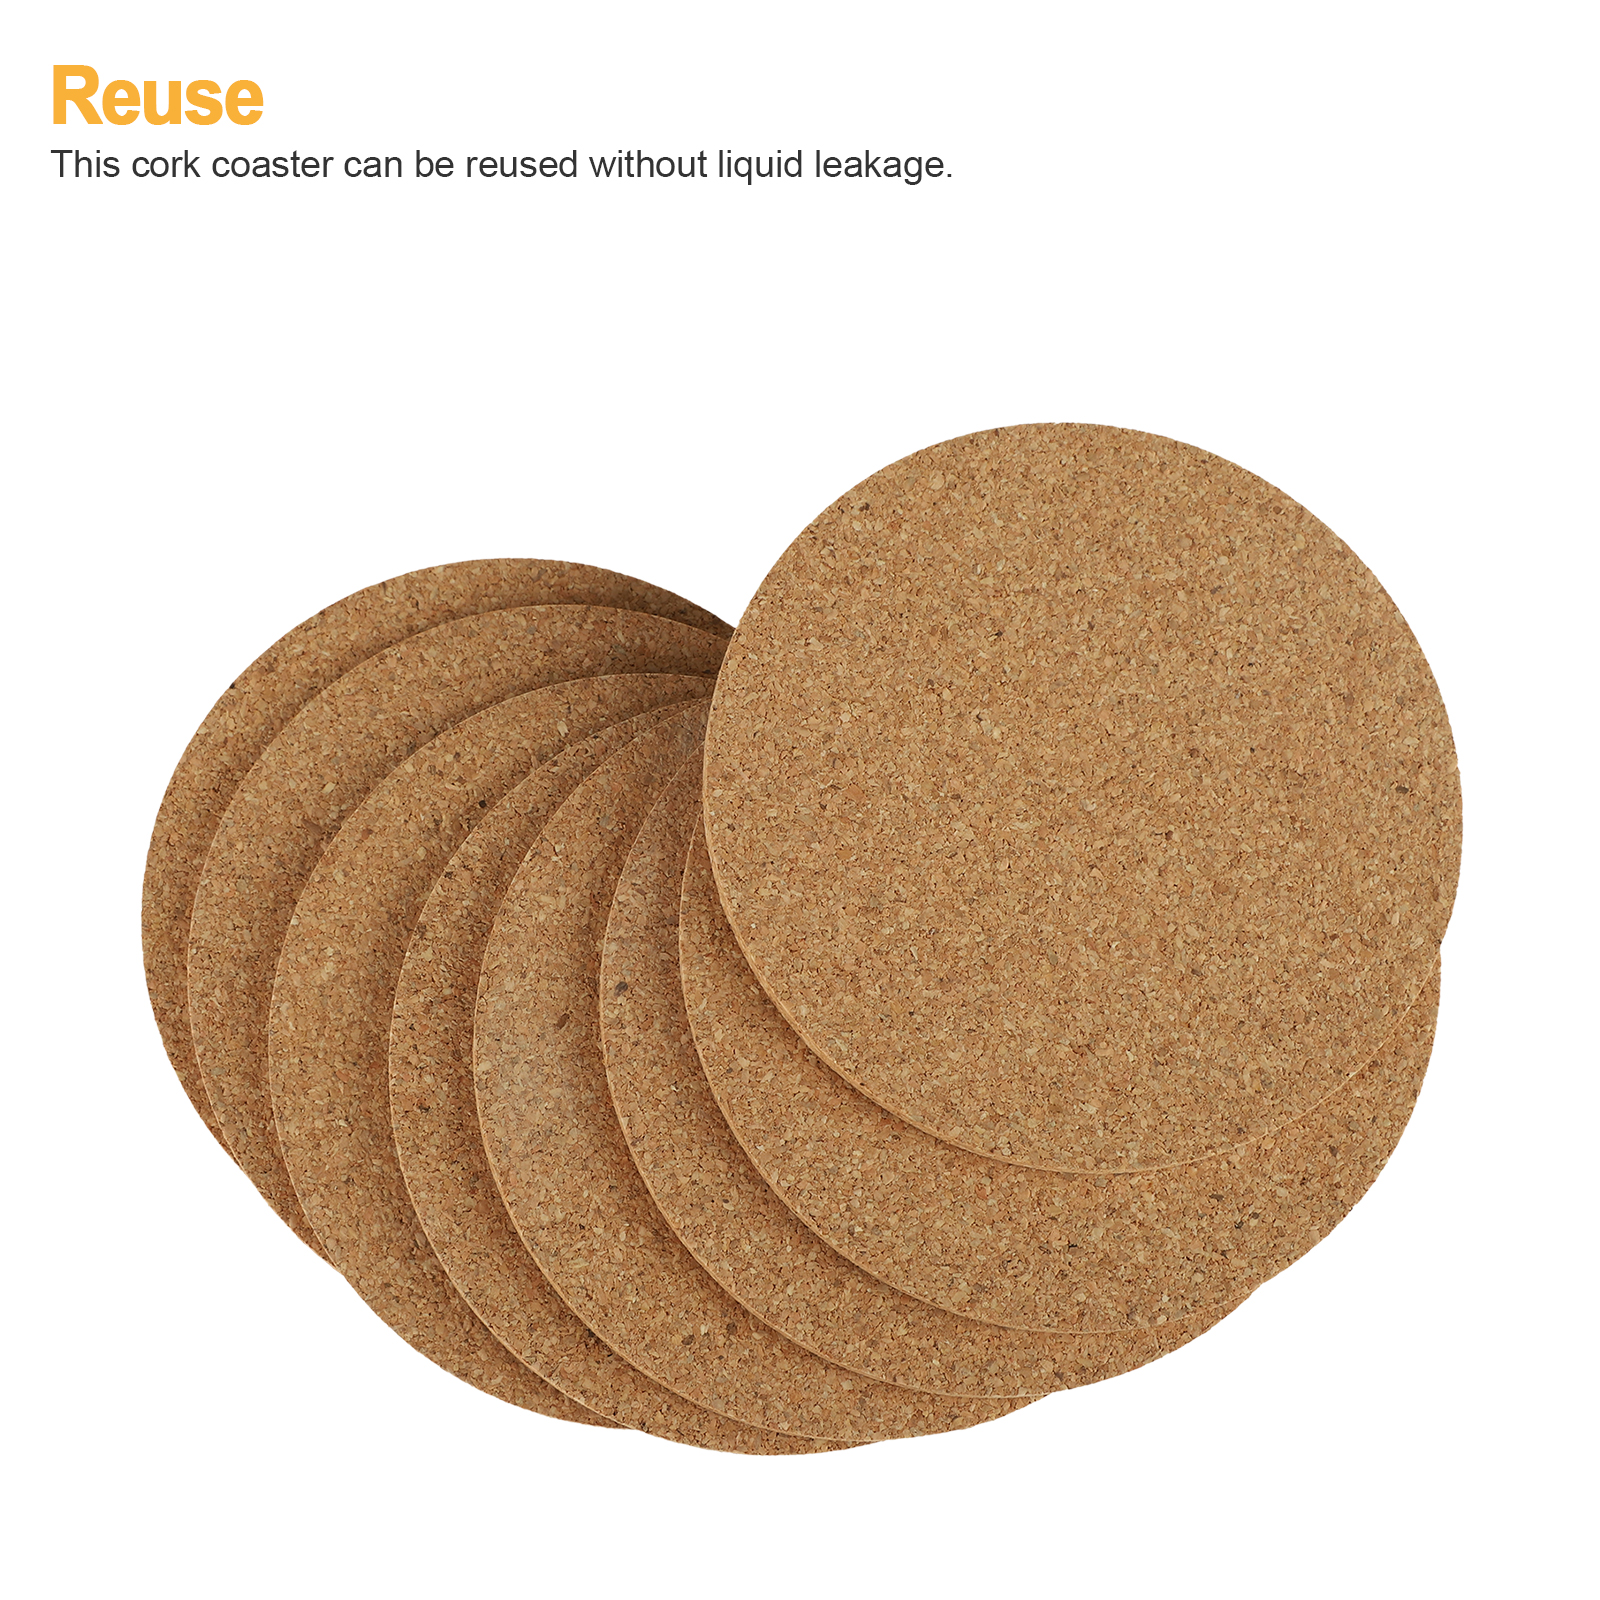 8-16pcs-Cork-Drink-Coasters-Tea-Coffee-Absorbent-Round-Cup-Mat-Table-Decor-Home thumbnail 5